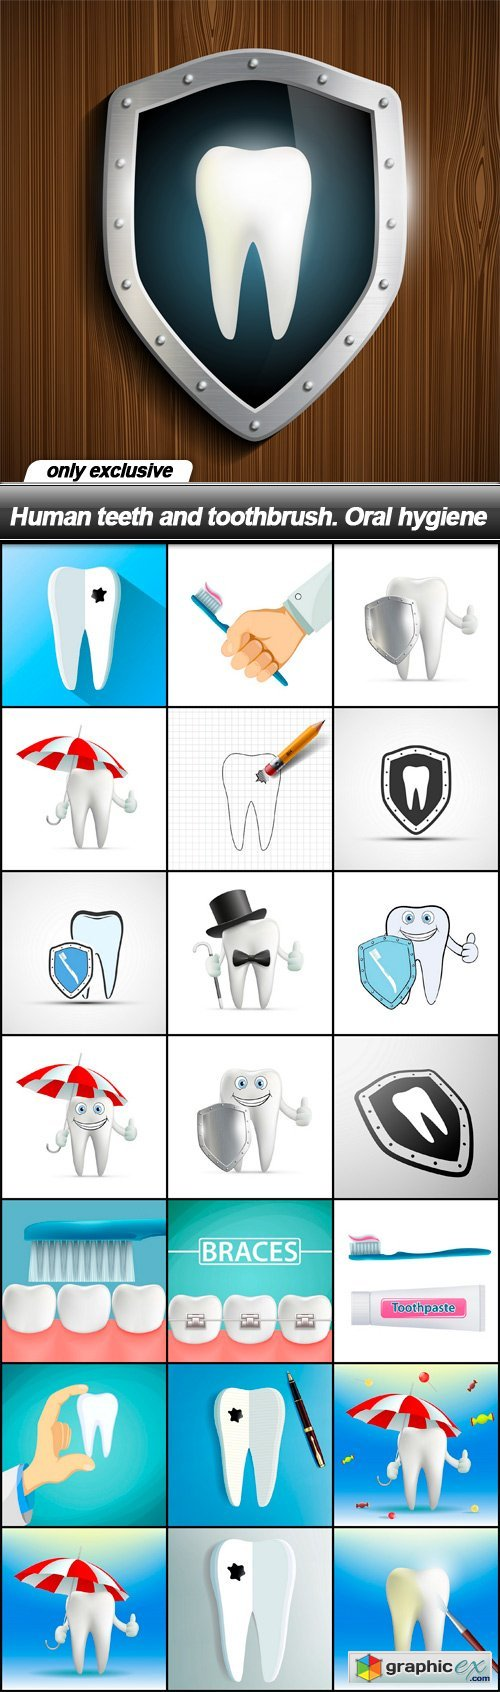 Human teeth and toothbrush. Oral hygiene - 22 EPS